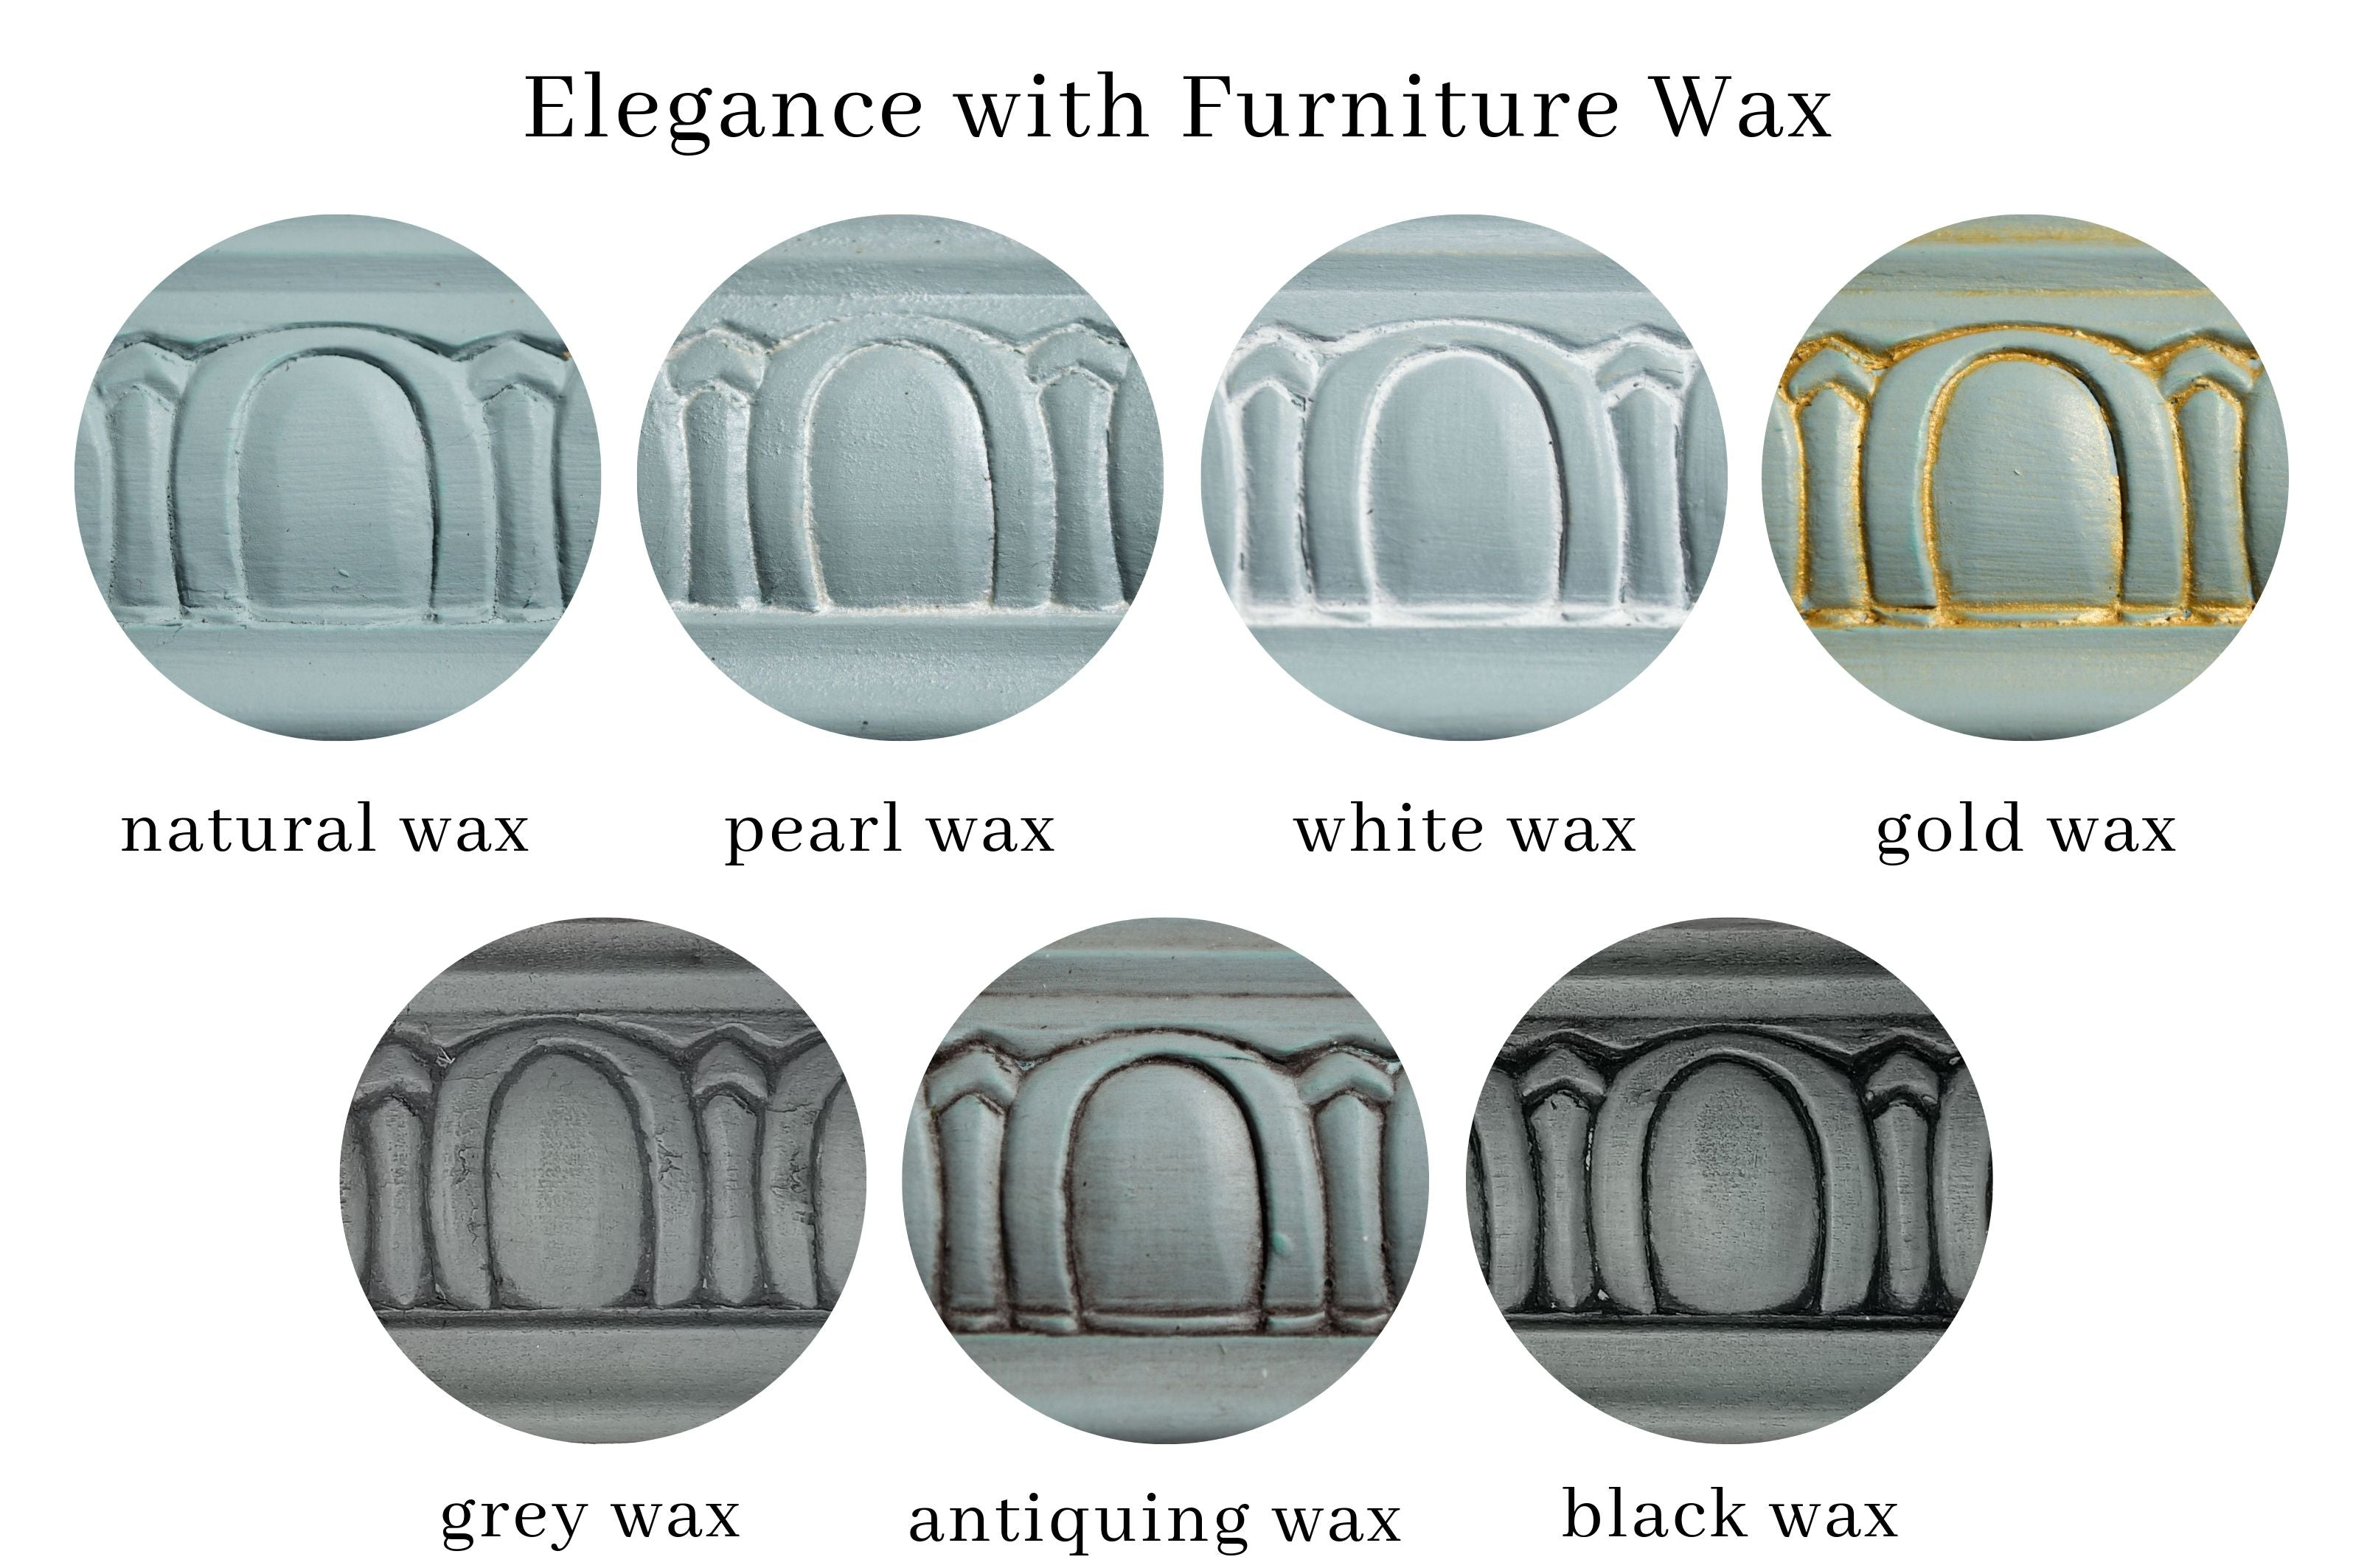 samples of elegance all-in-one decor paint with seven different furniture wax color finishes